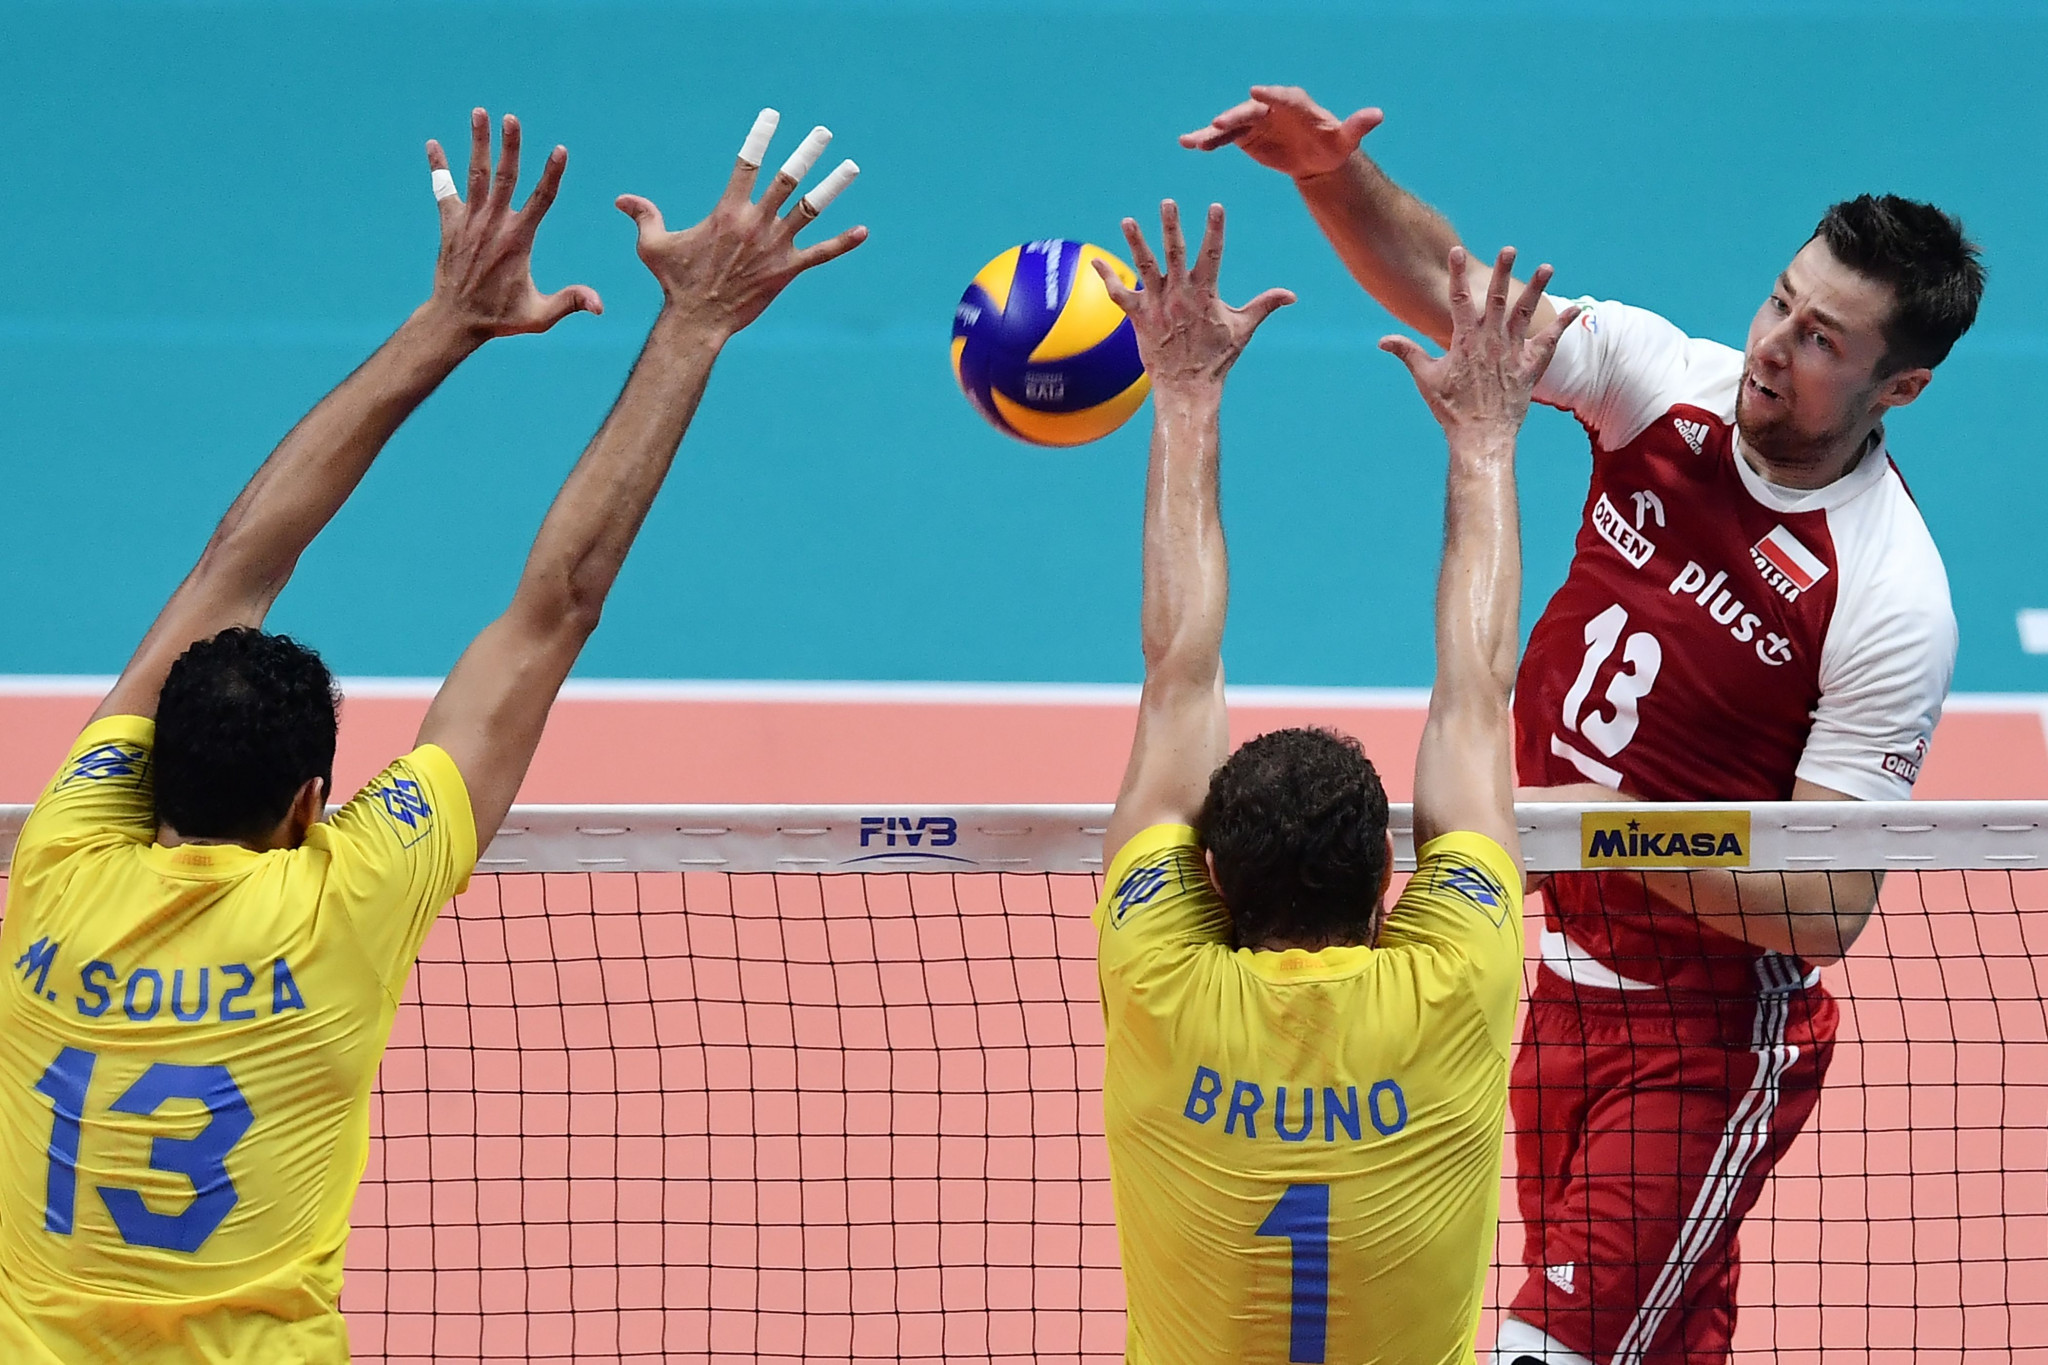 FIVB calls for Poland's Kubiak to apologise after being suspended for anti-Iranian remarks